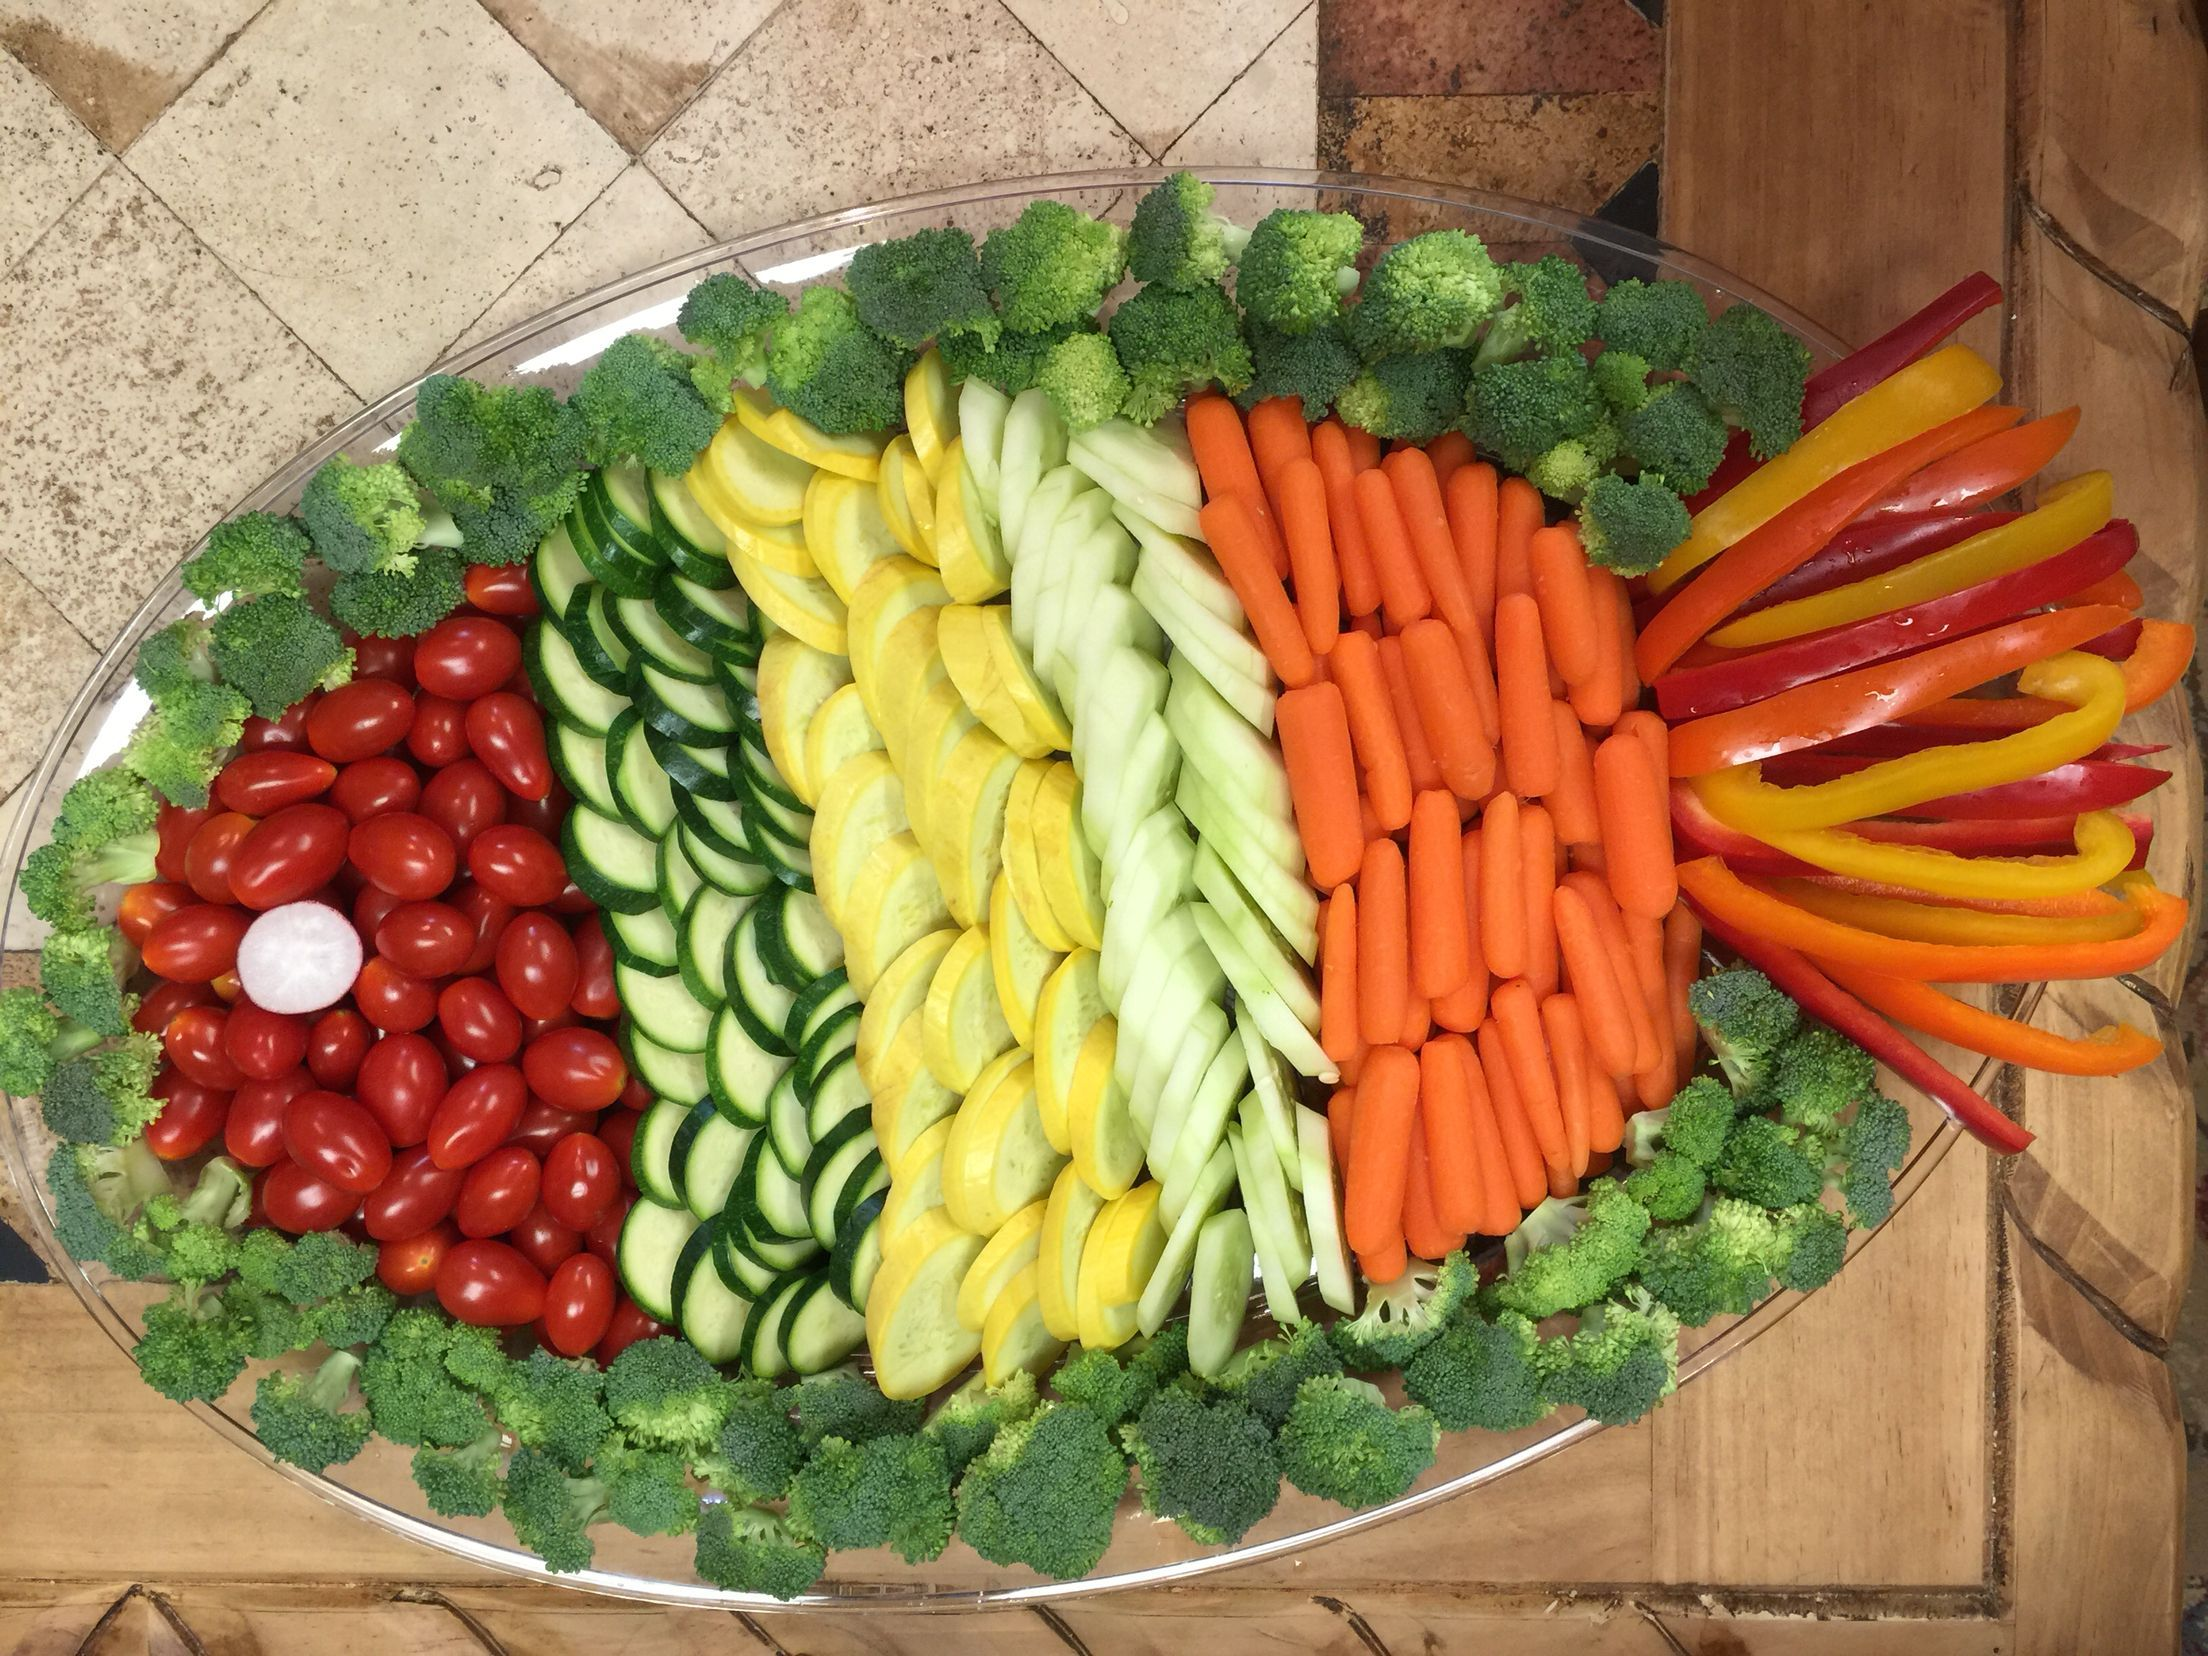 Gemüse Für Kinderparty Resultado De Imagen De Vegetable Party Tray Ideas | Kinder Party Essen, Kindergeburtstag Essen, Fingerfood Kindergeburtstag